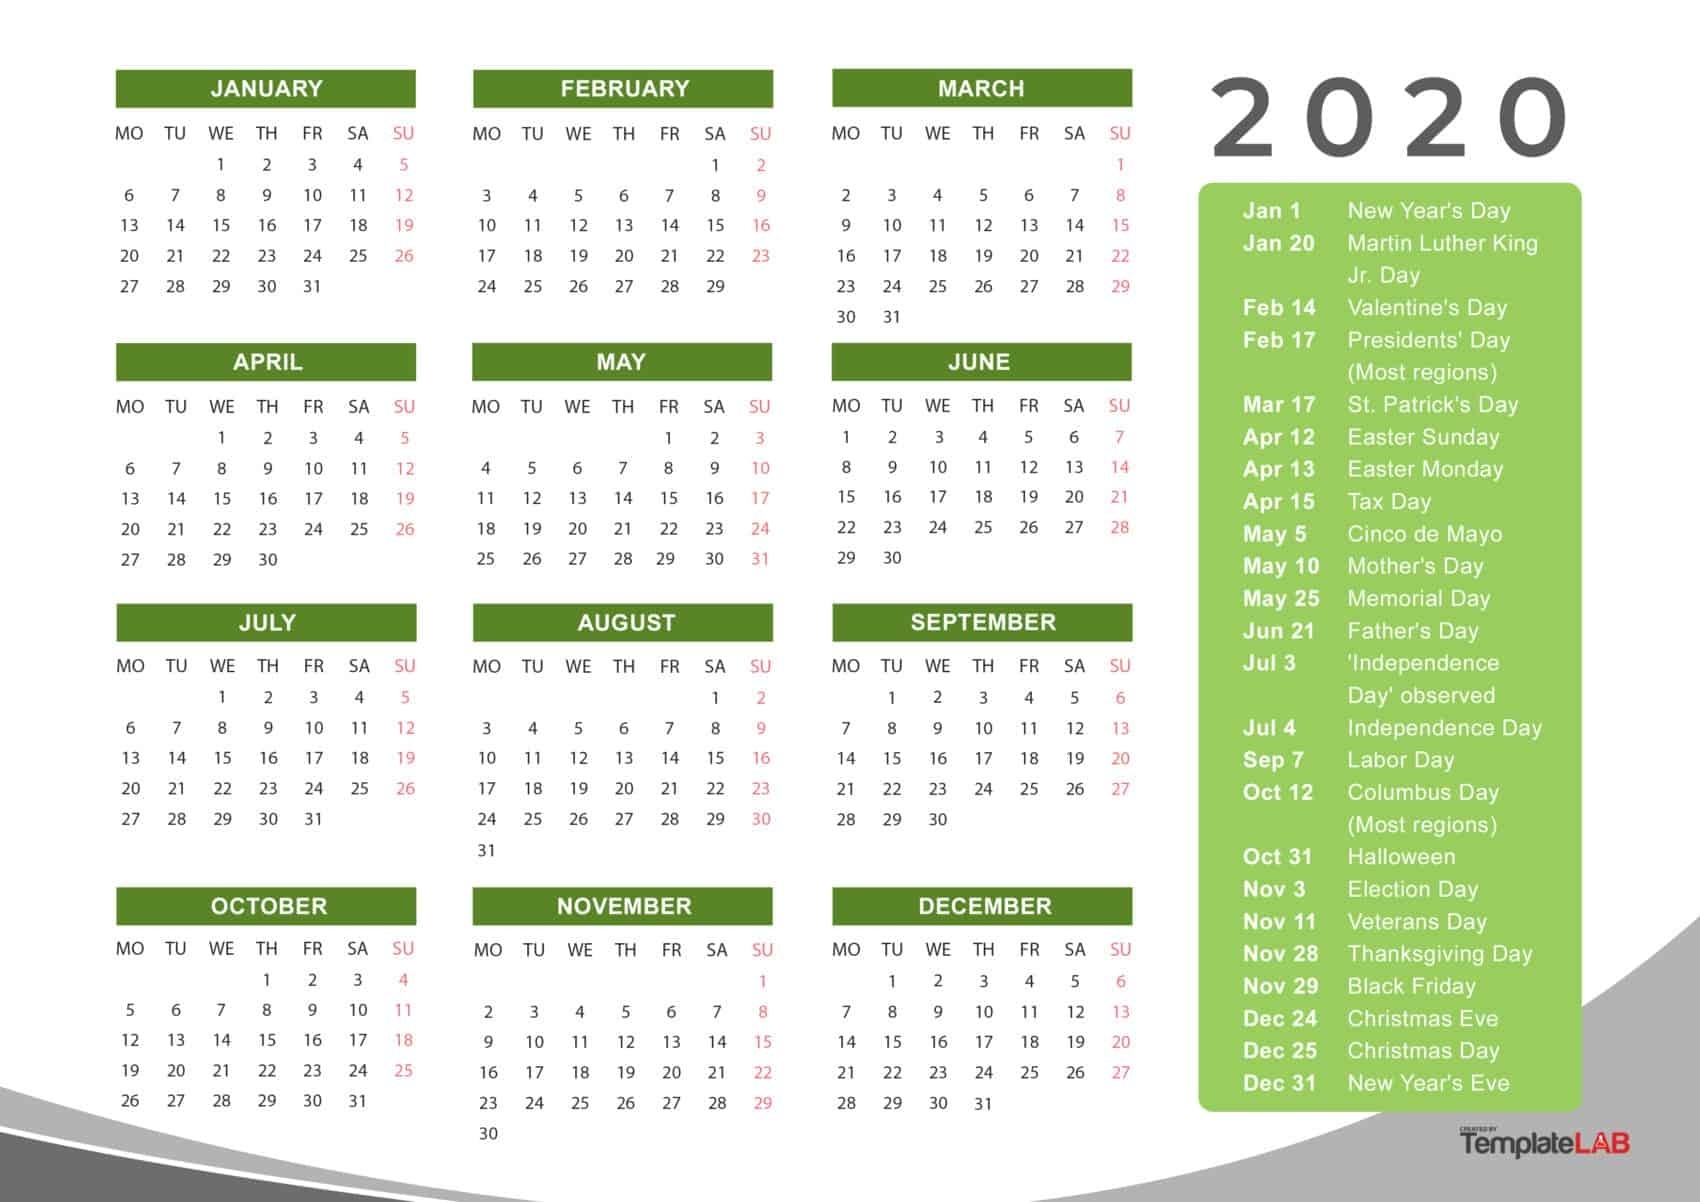 2020 Printable Calendars [Monthly, With Holidays, Yearly] ᐅ Perky Free Printable Calenders With Legal Holidays